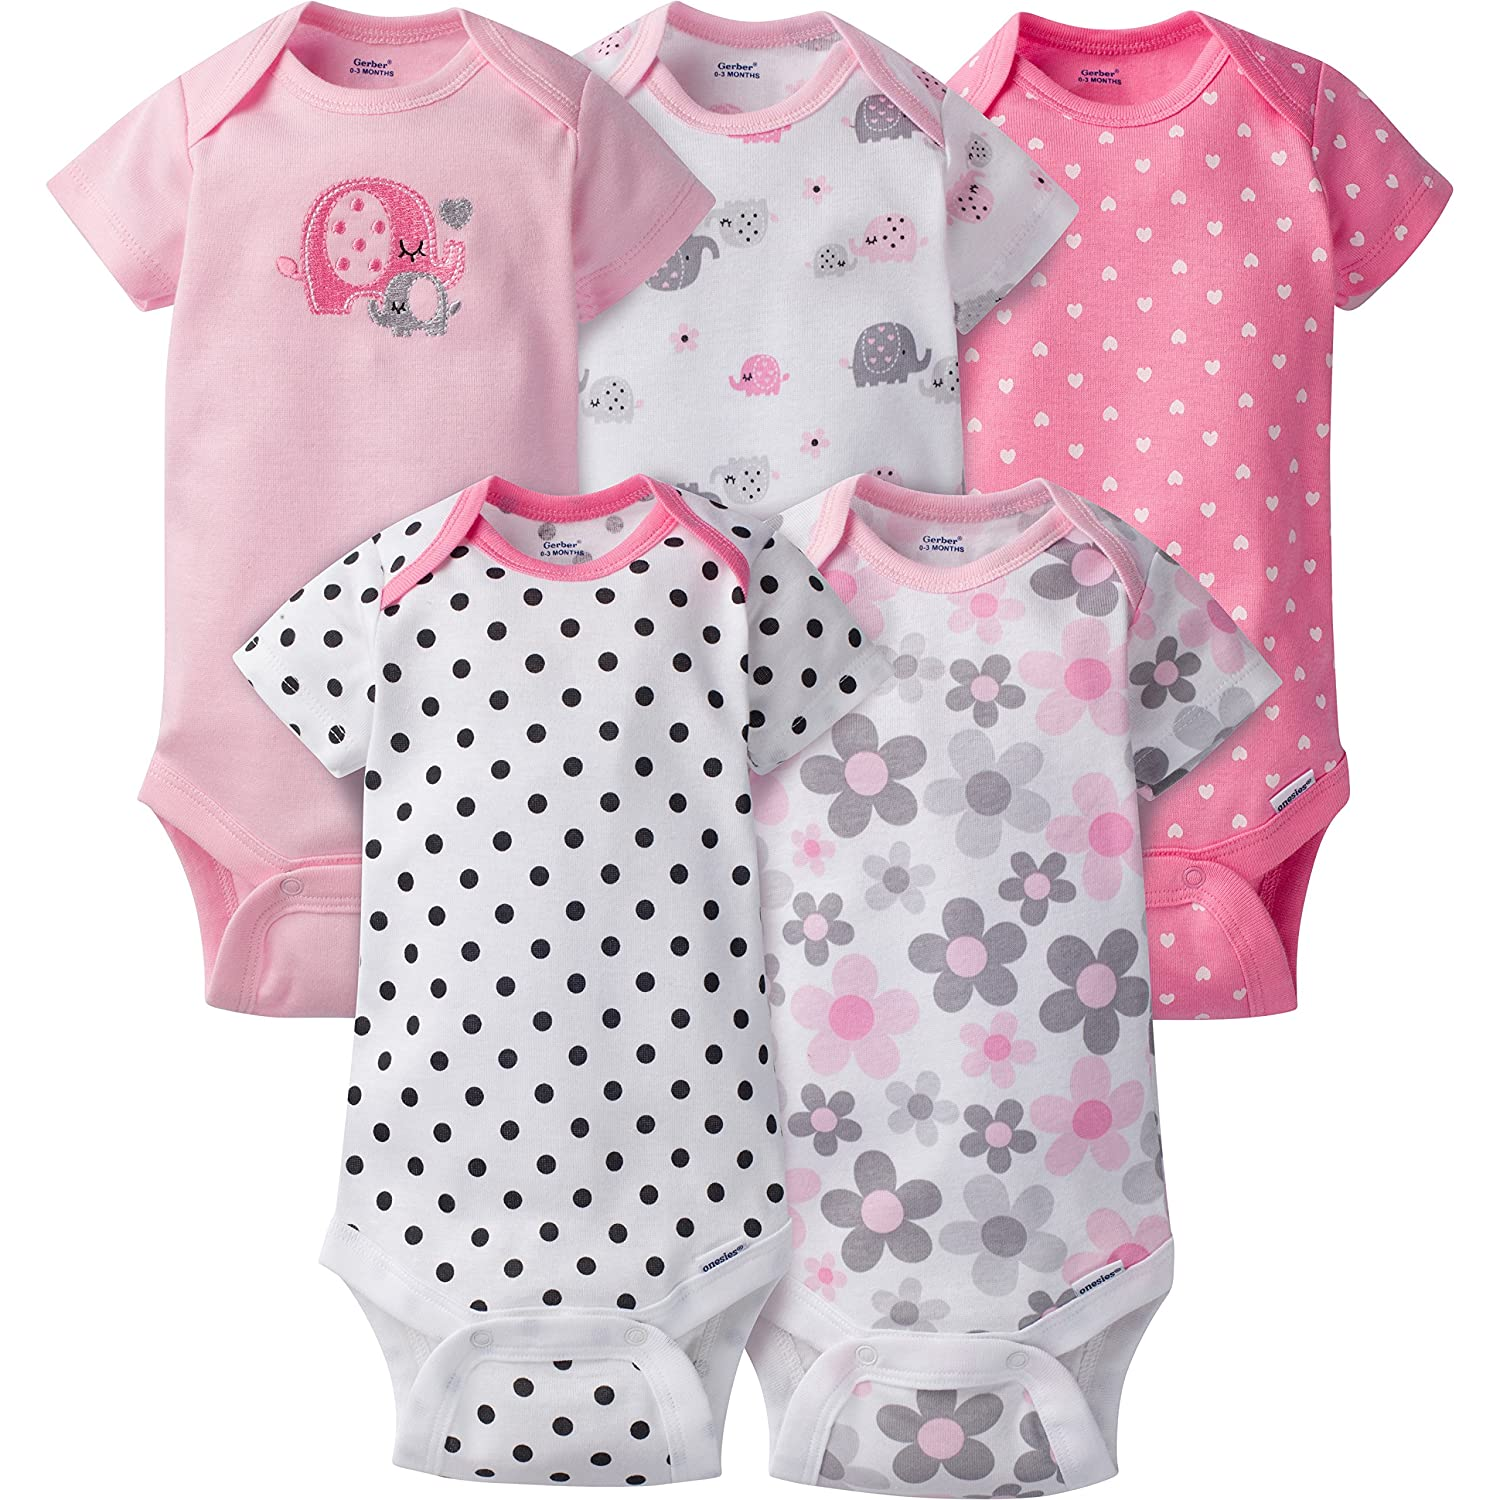 Gerber Baby Girls' 5 Pack Onesies, Elephants/Flowers, 0-3 Months 81884516AGR303M